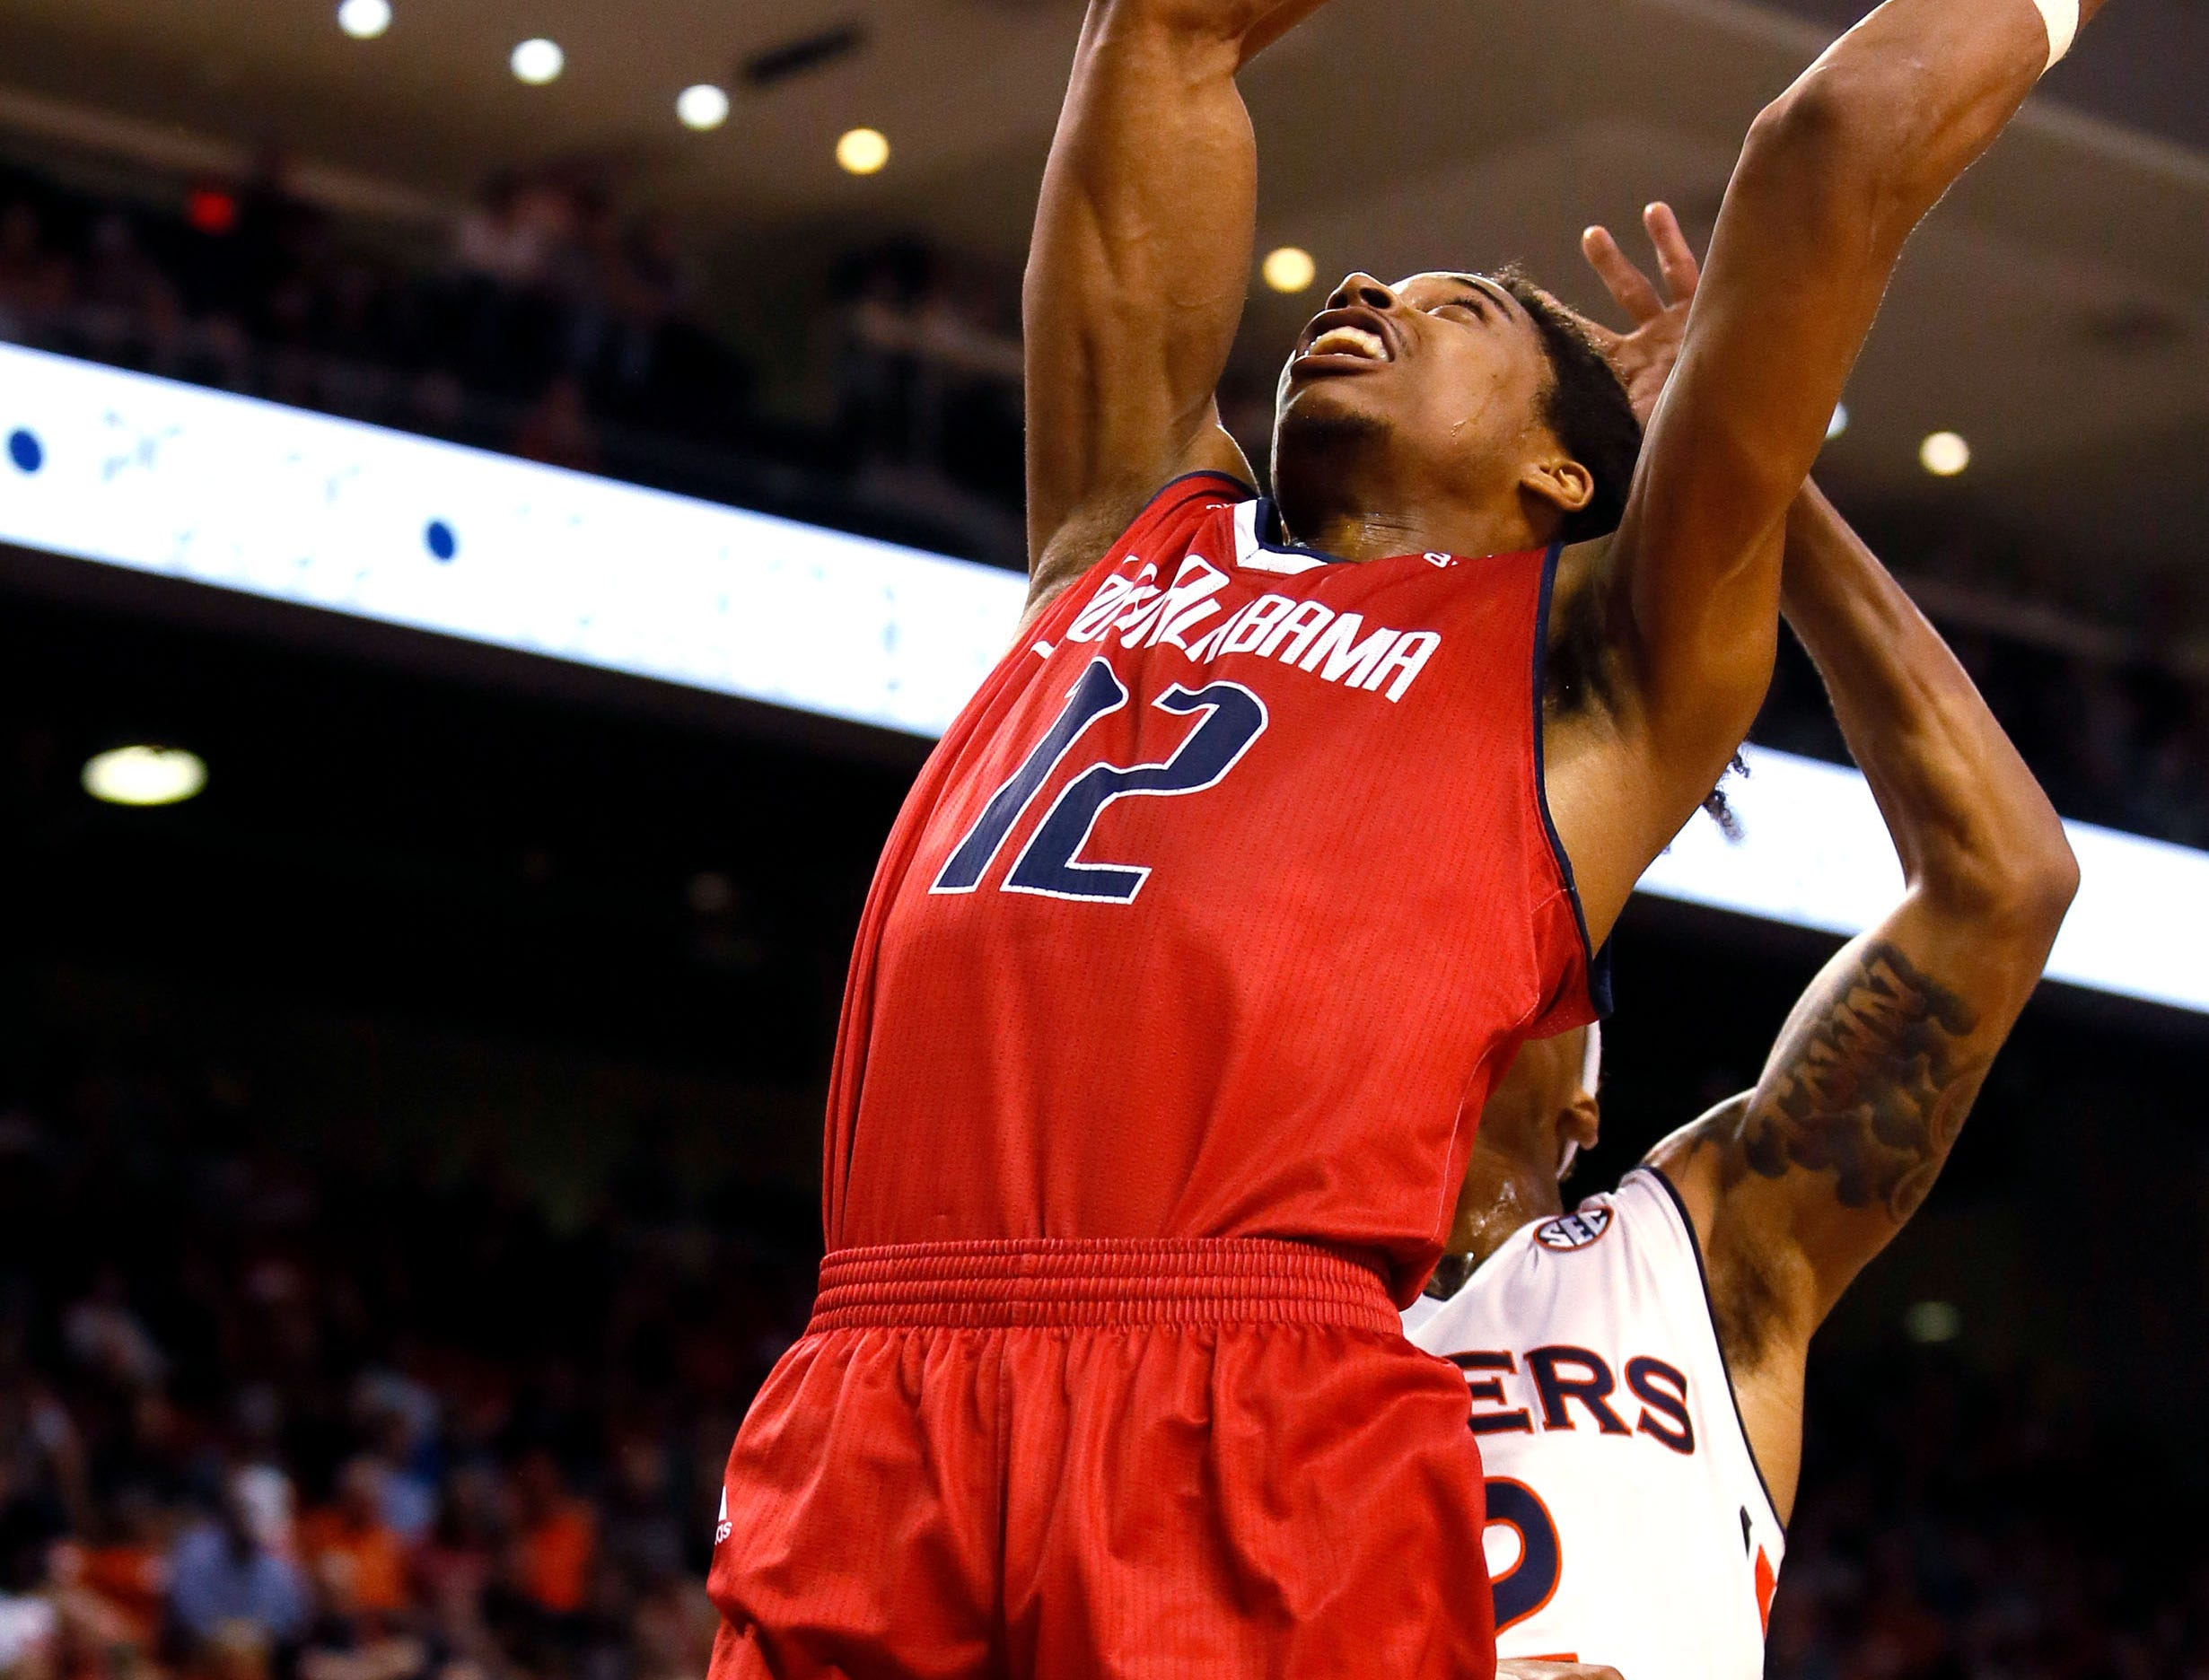 Nov 6, 2018; Auburn, AL, USA; South Alabama Jaguars forward RJ Kelly (12) takes a shot against the Auburn Tigers during the first half at Auburn Arena. Mandatory Credit: John Reed-USA TODAY Sports